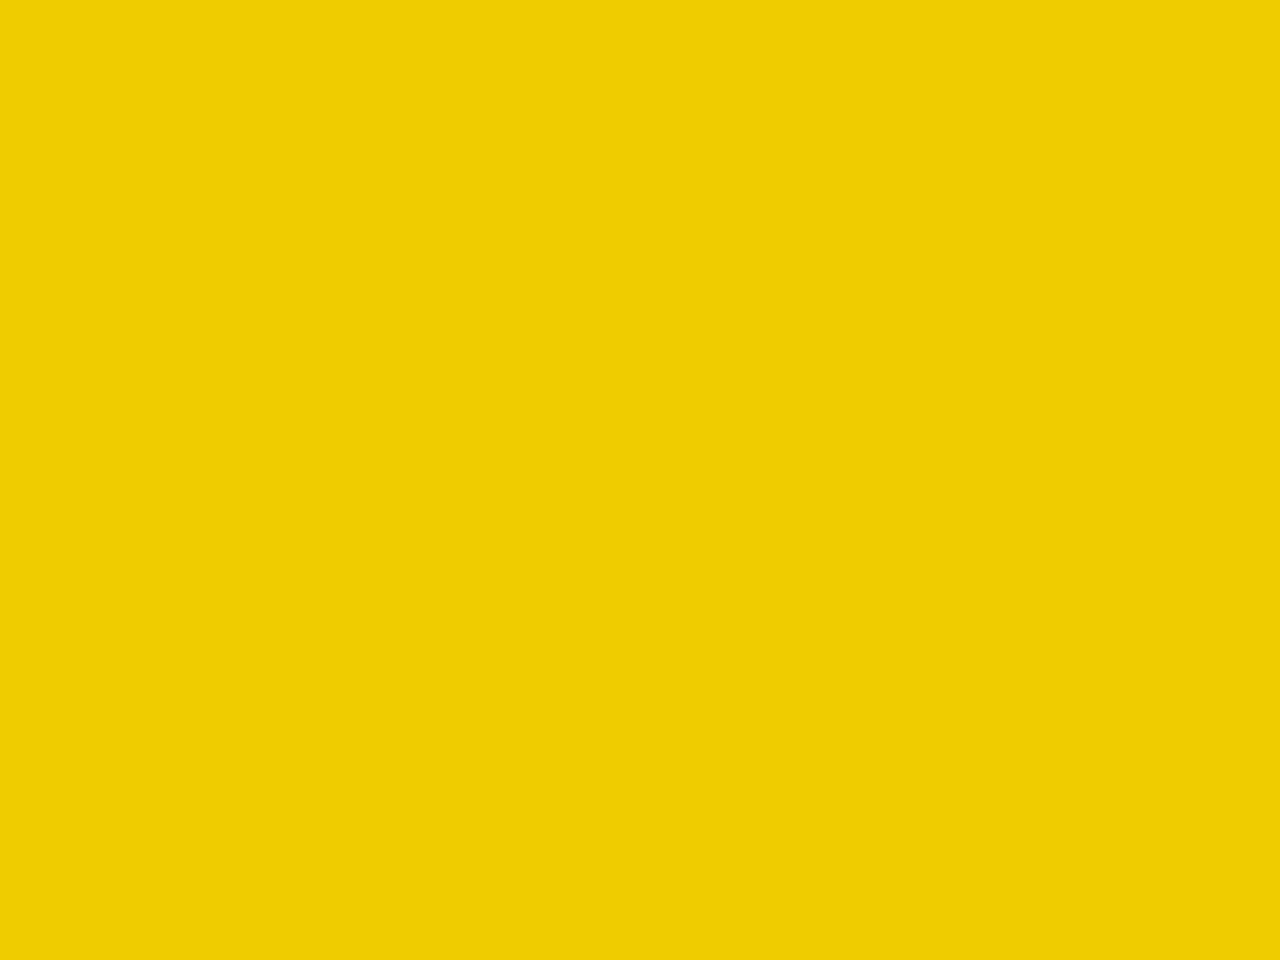 1280x960 Yellow Munsell Solid Color Background